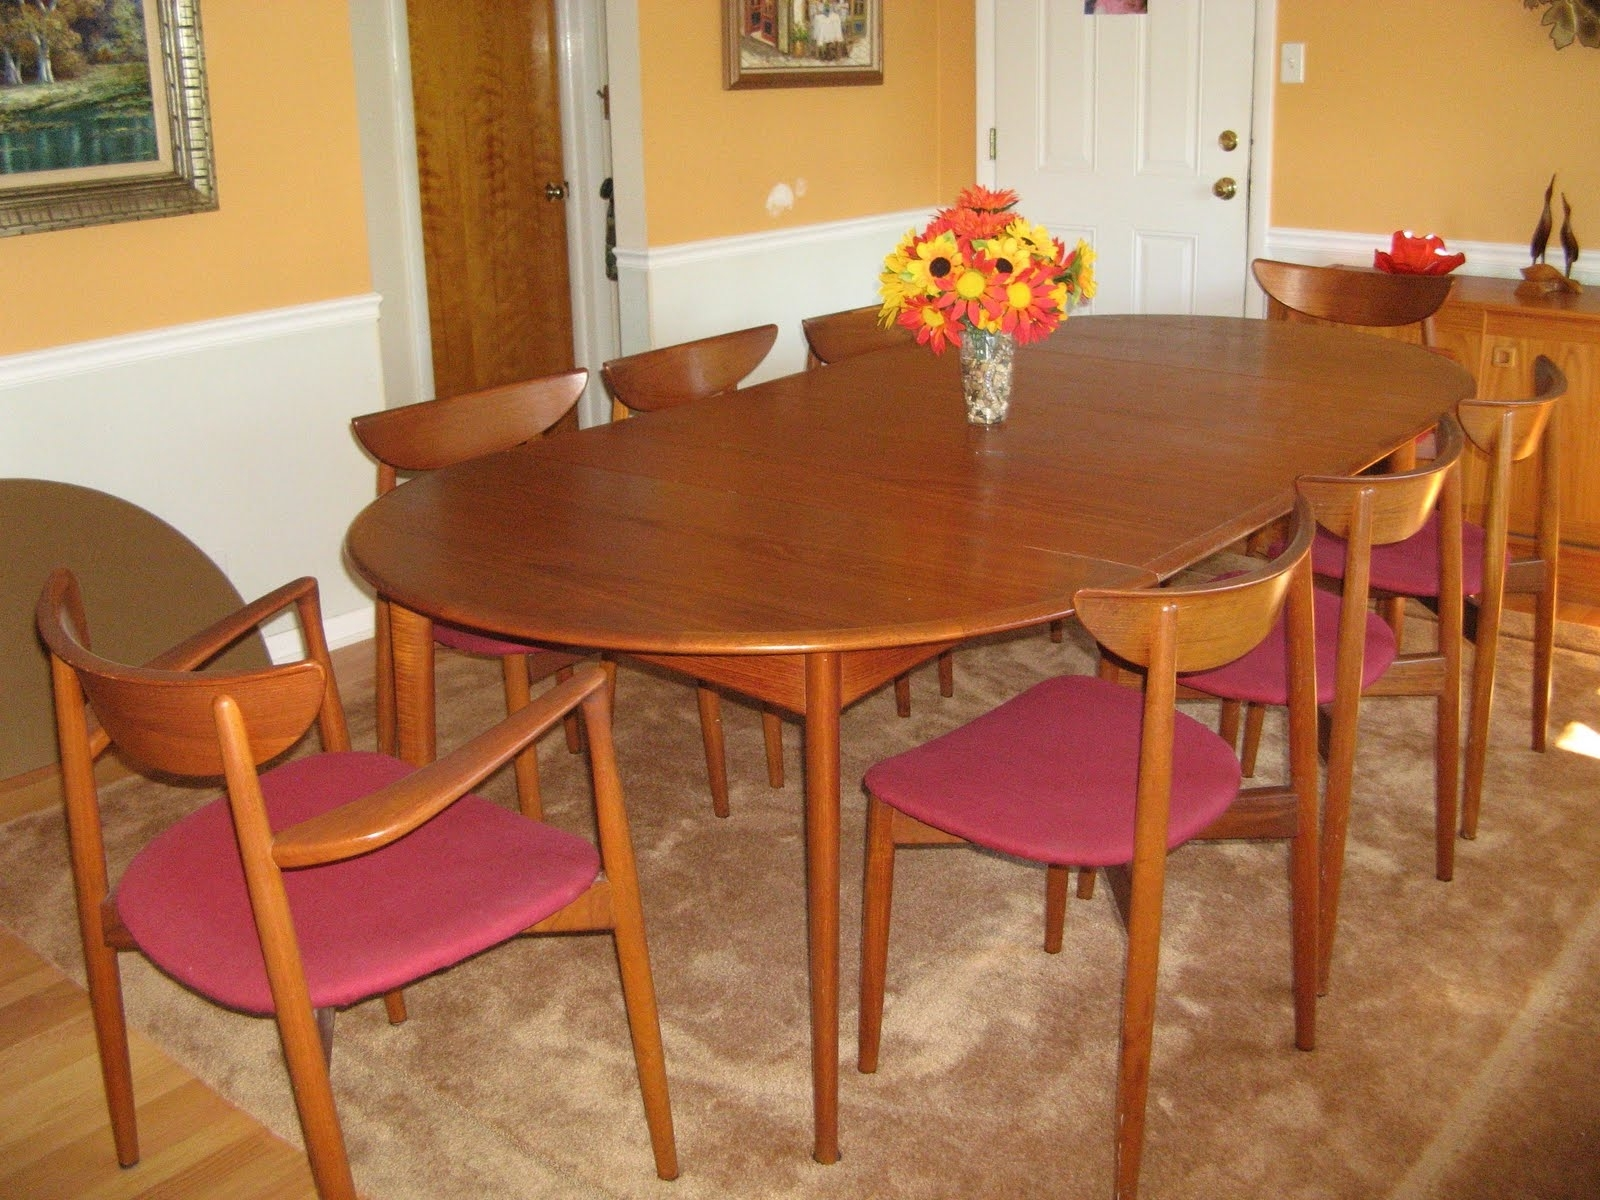 Widely Used Round Teak Dining Tables Inside Midcenturymodernmania@gmail: Svend Madsen Teak Dining Room Table (View 25 of 25)